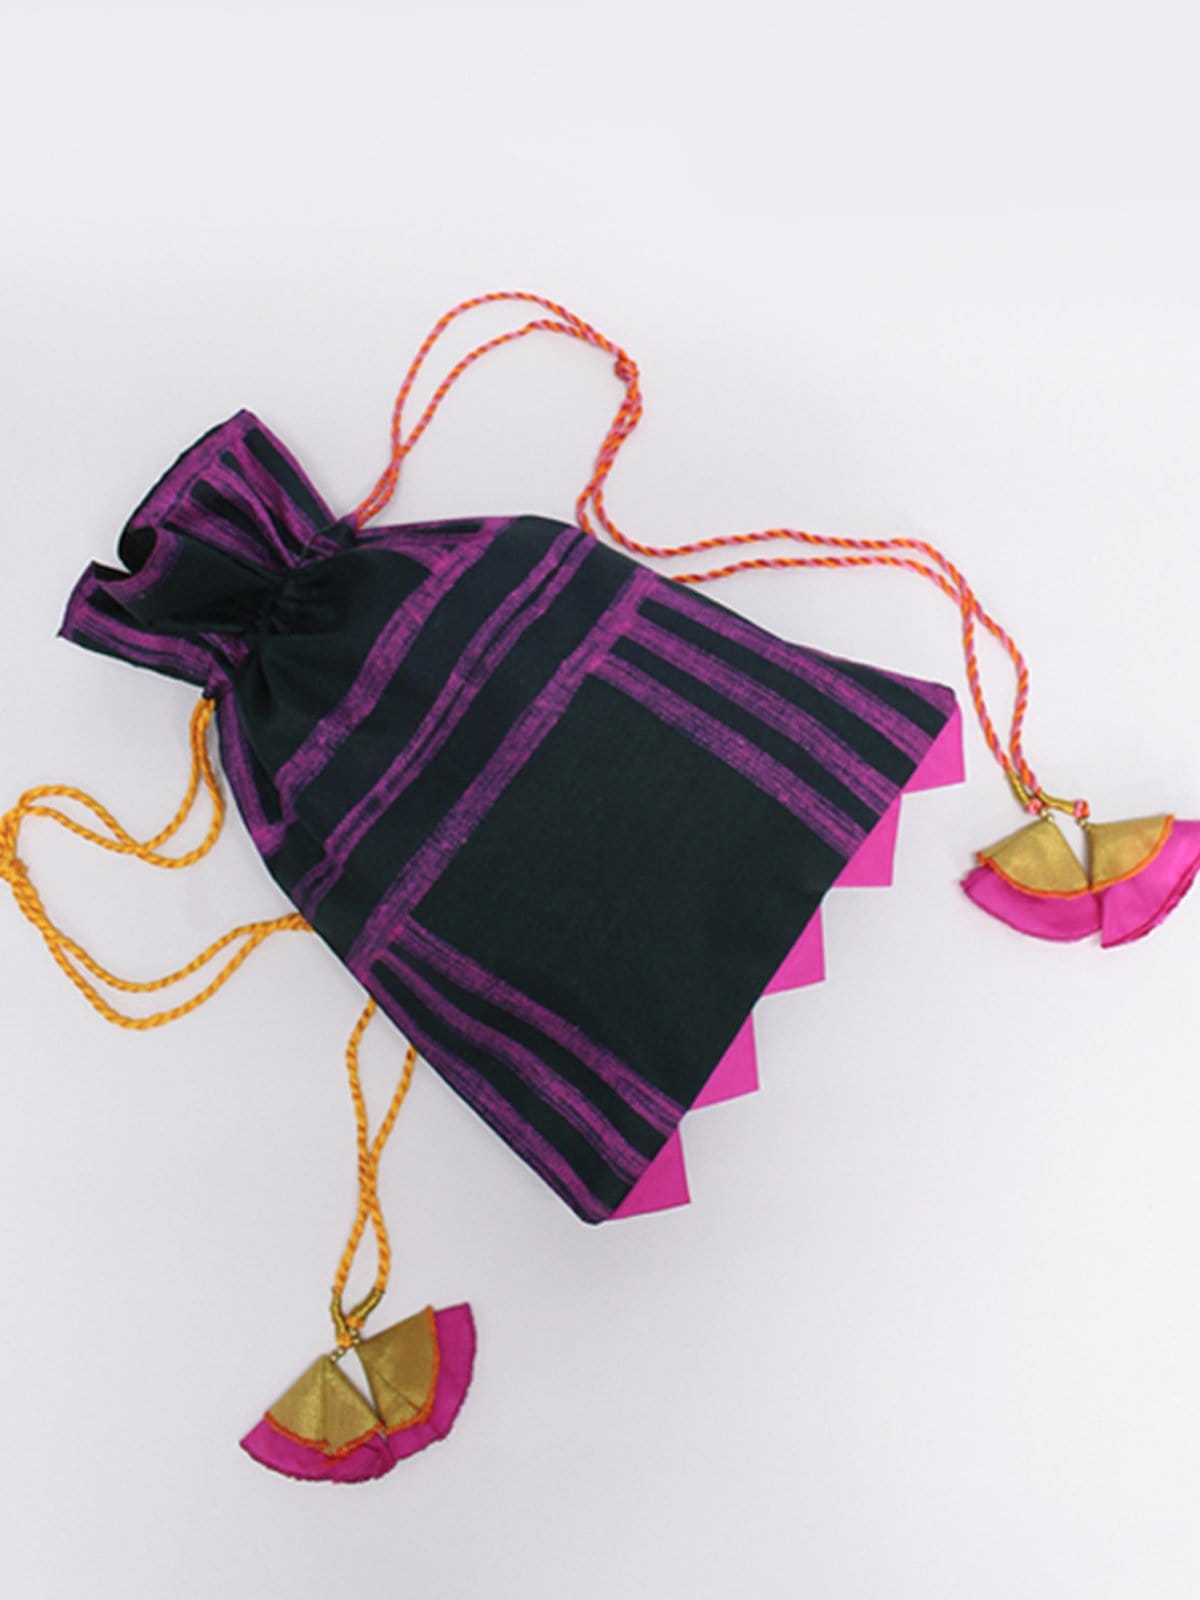 BLACK WITH PINK STRIPES SHIBORI POTLI BAG